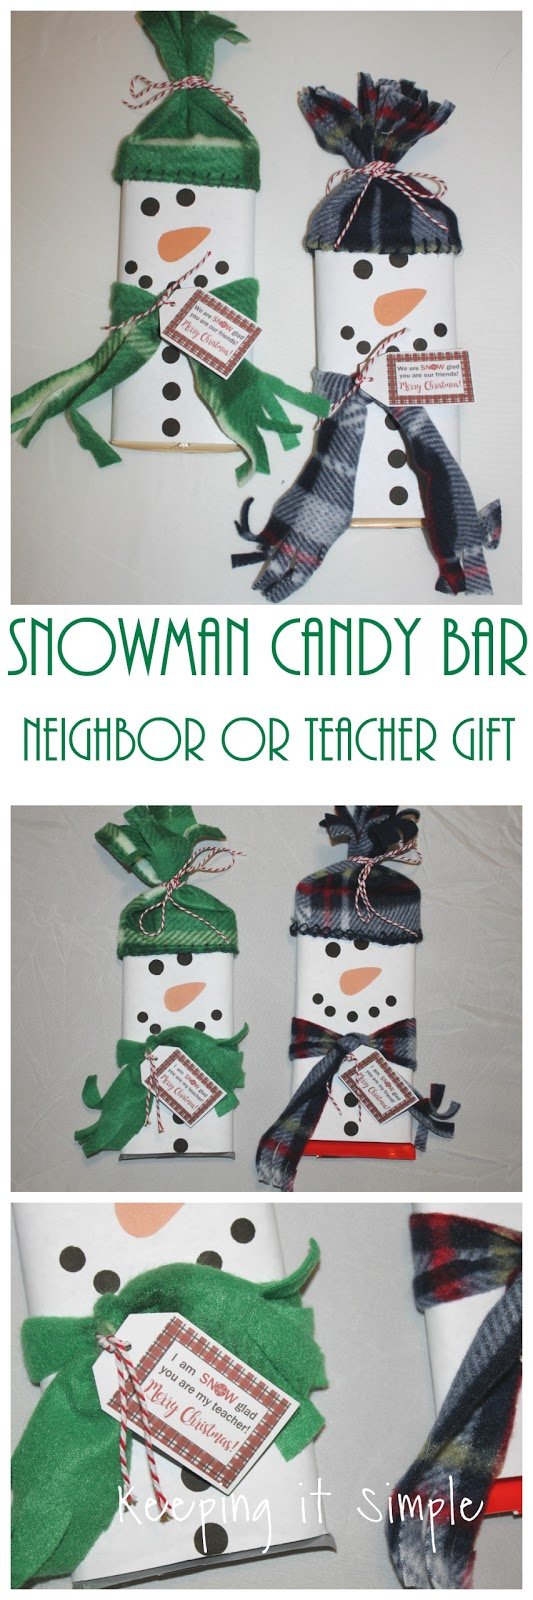 picture regarding Snowman Candy Bar Wrapper Free Printable referred to as Snowman Sweet Bar Neighbor or Trainer Reward with No cost